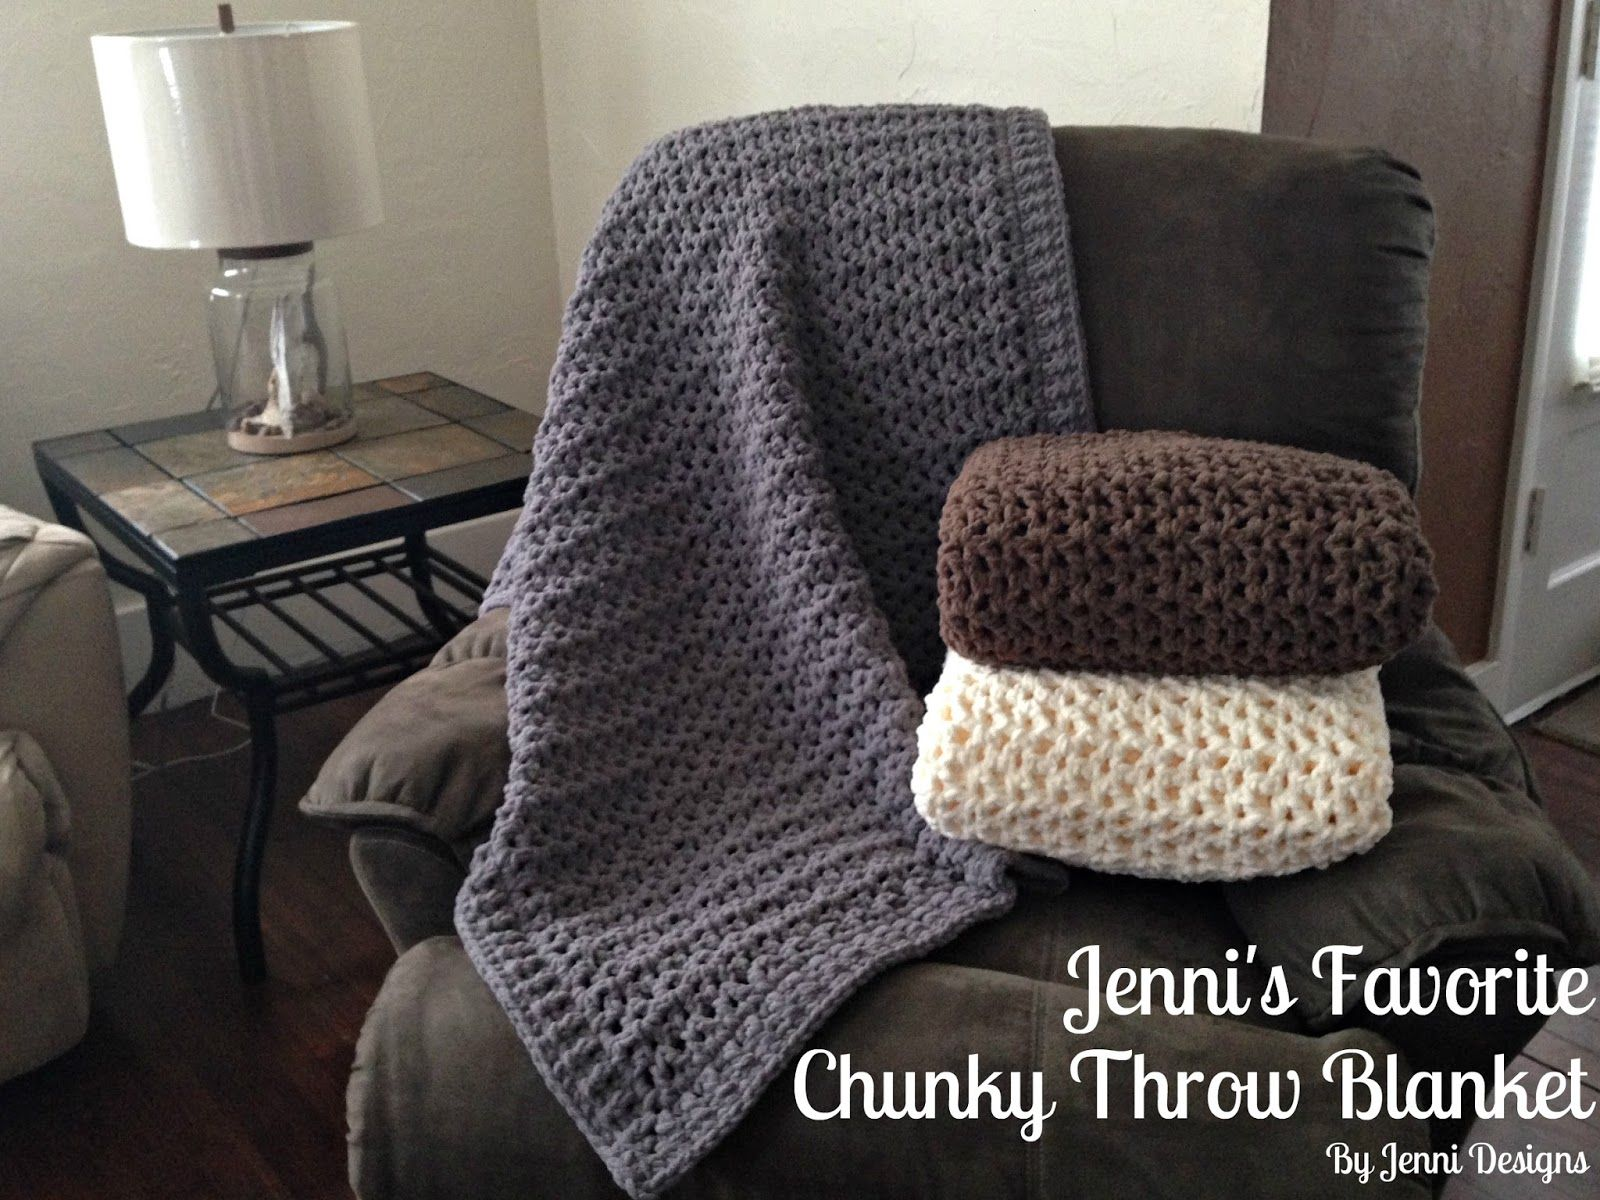 Free Crochet Pattern: Jenni\'s Favorite Chunky Throw Blanket using ...